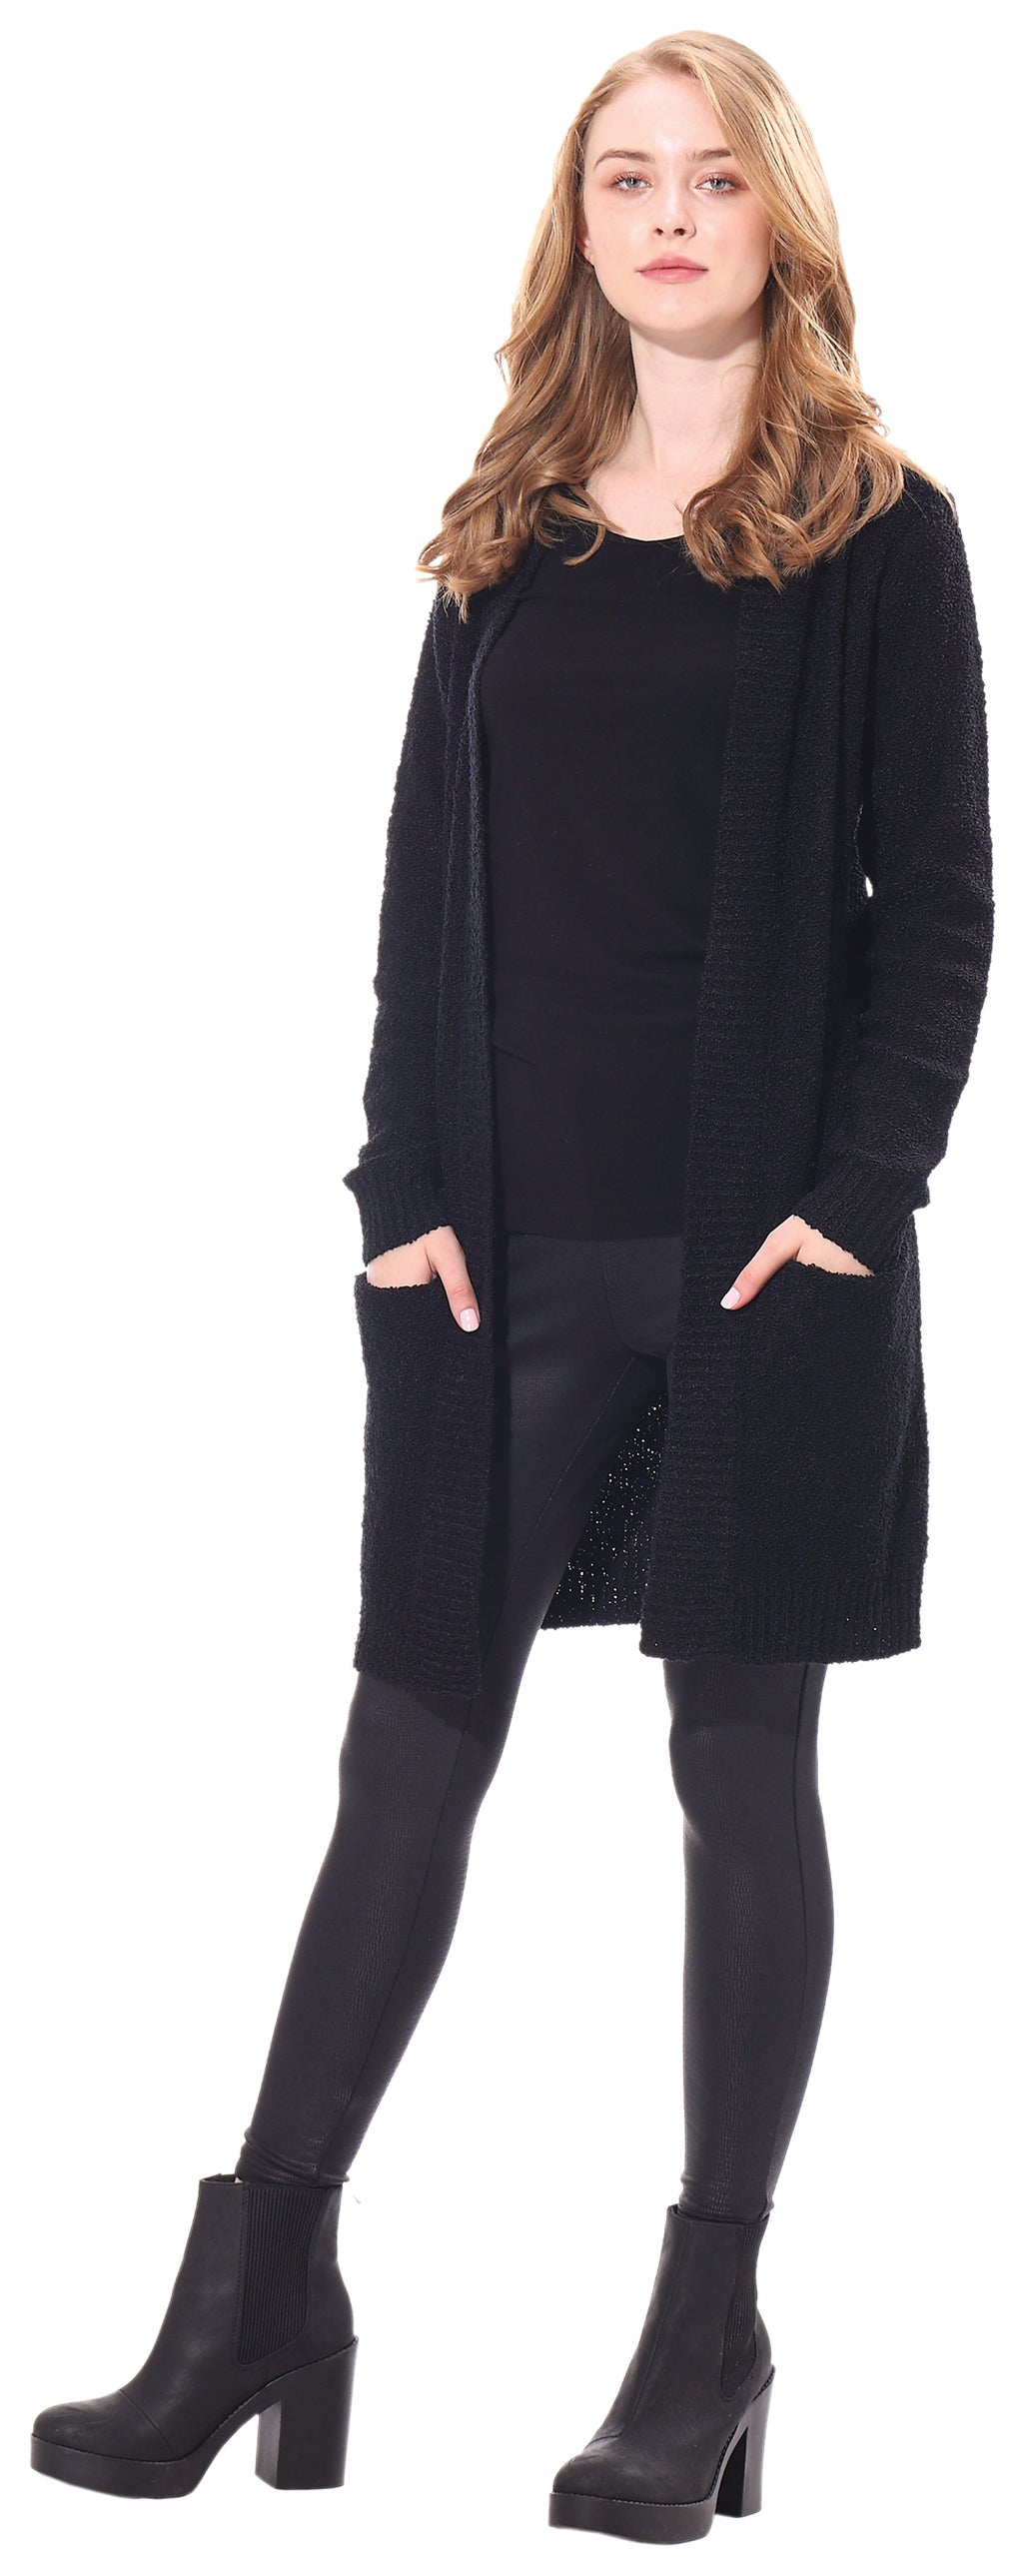 Ladies' Long Black Coat with Pockets